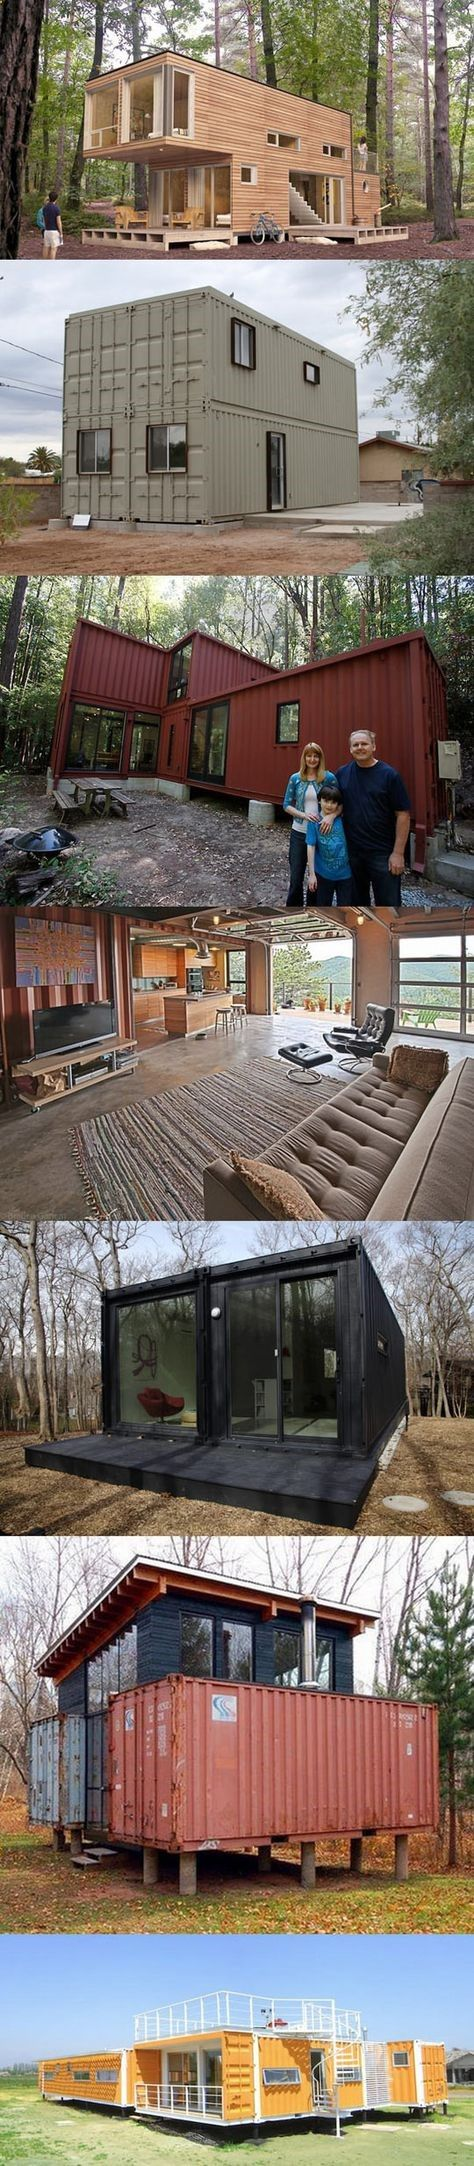 Homes made from shipping containers hhy pinterest - Casas prefabricadas subterraneas ...